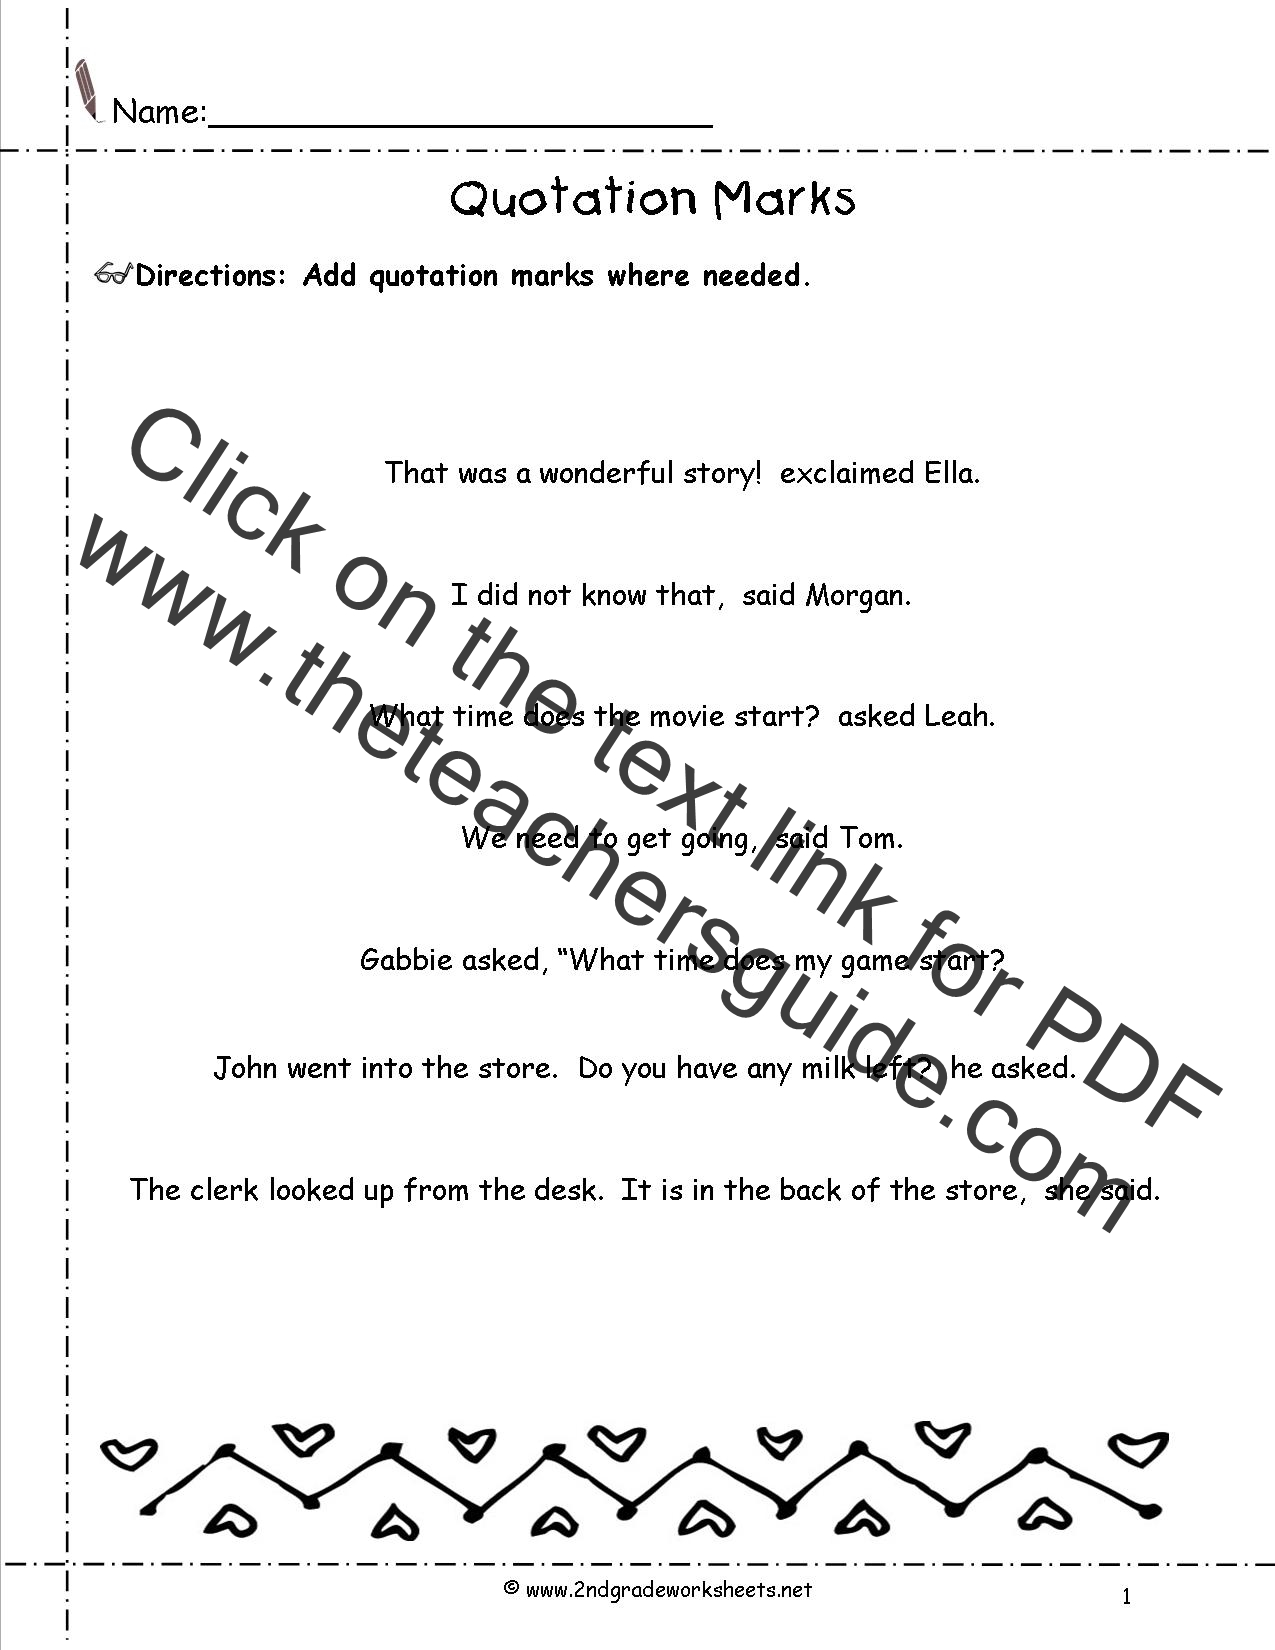 Worksheets Quotations Worksheet quotation marks worksheet 2nd grade free worksheets library what are education com